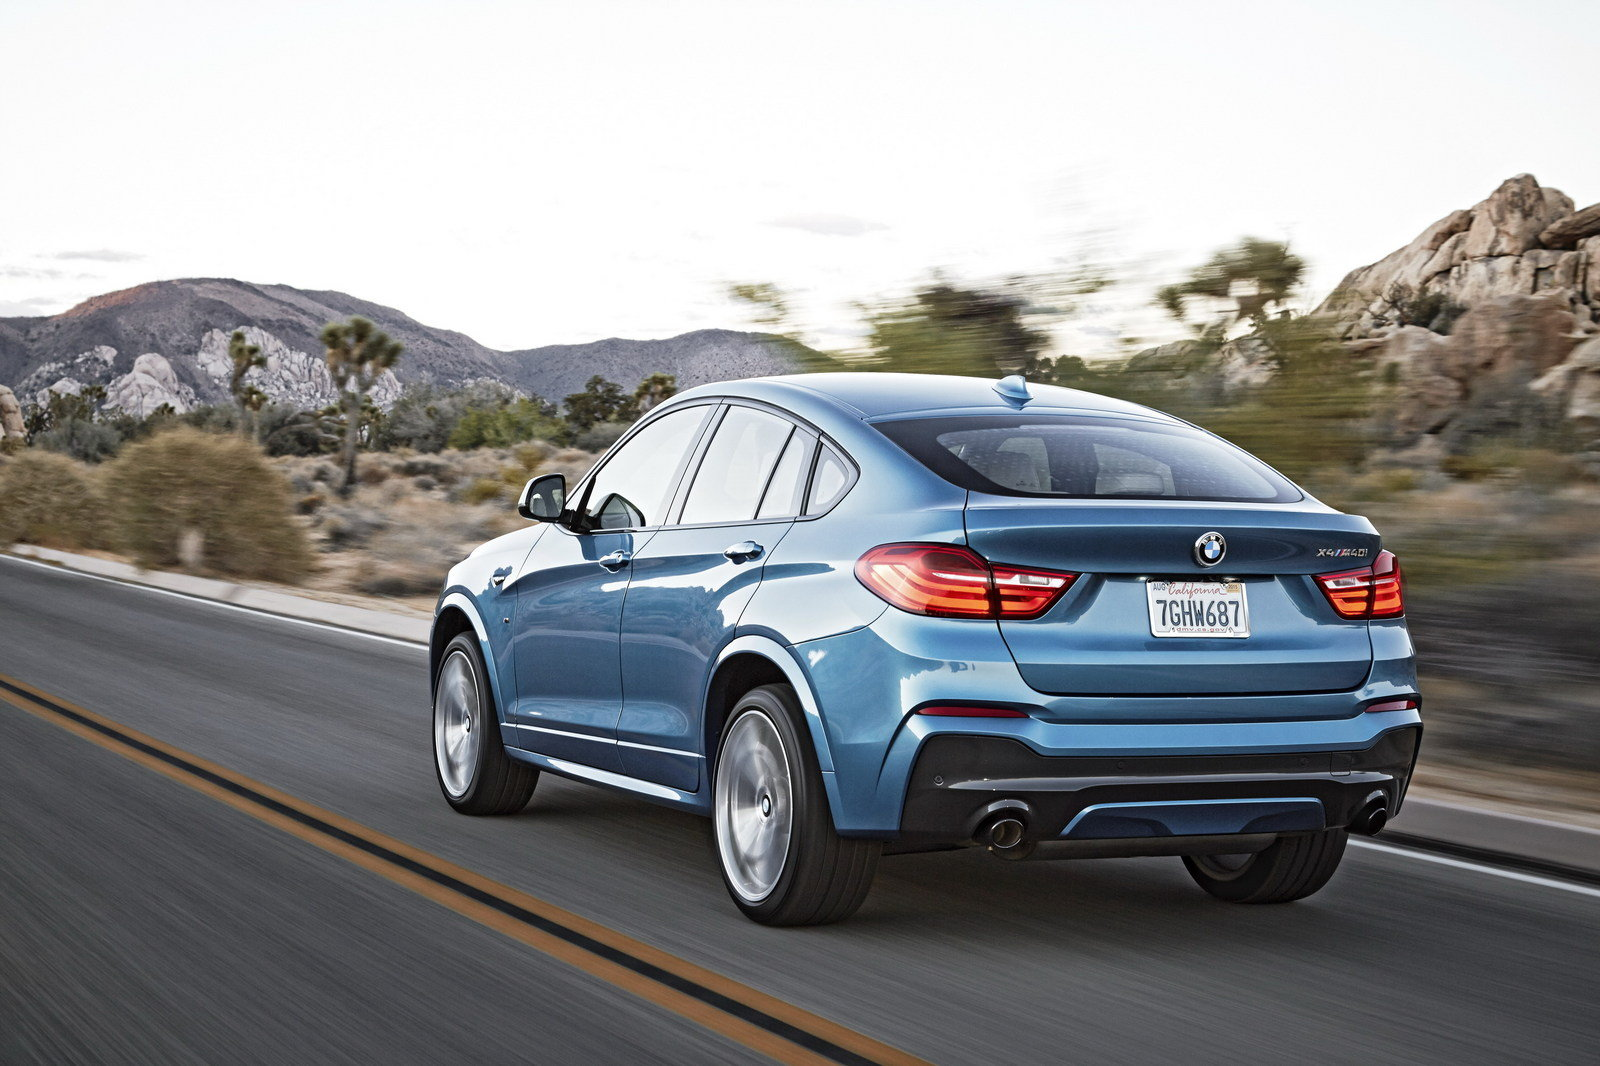 2016 bmw x4 m40i picture 649005 car review top speed. Black Bedroom Furniture Sets. Home Design Ideas